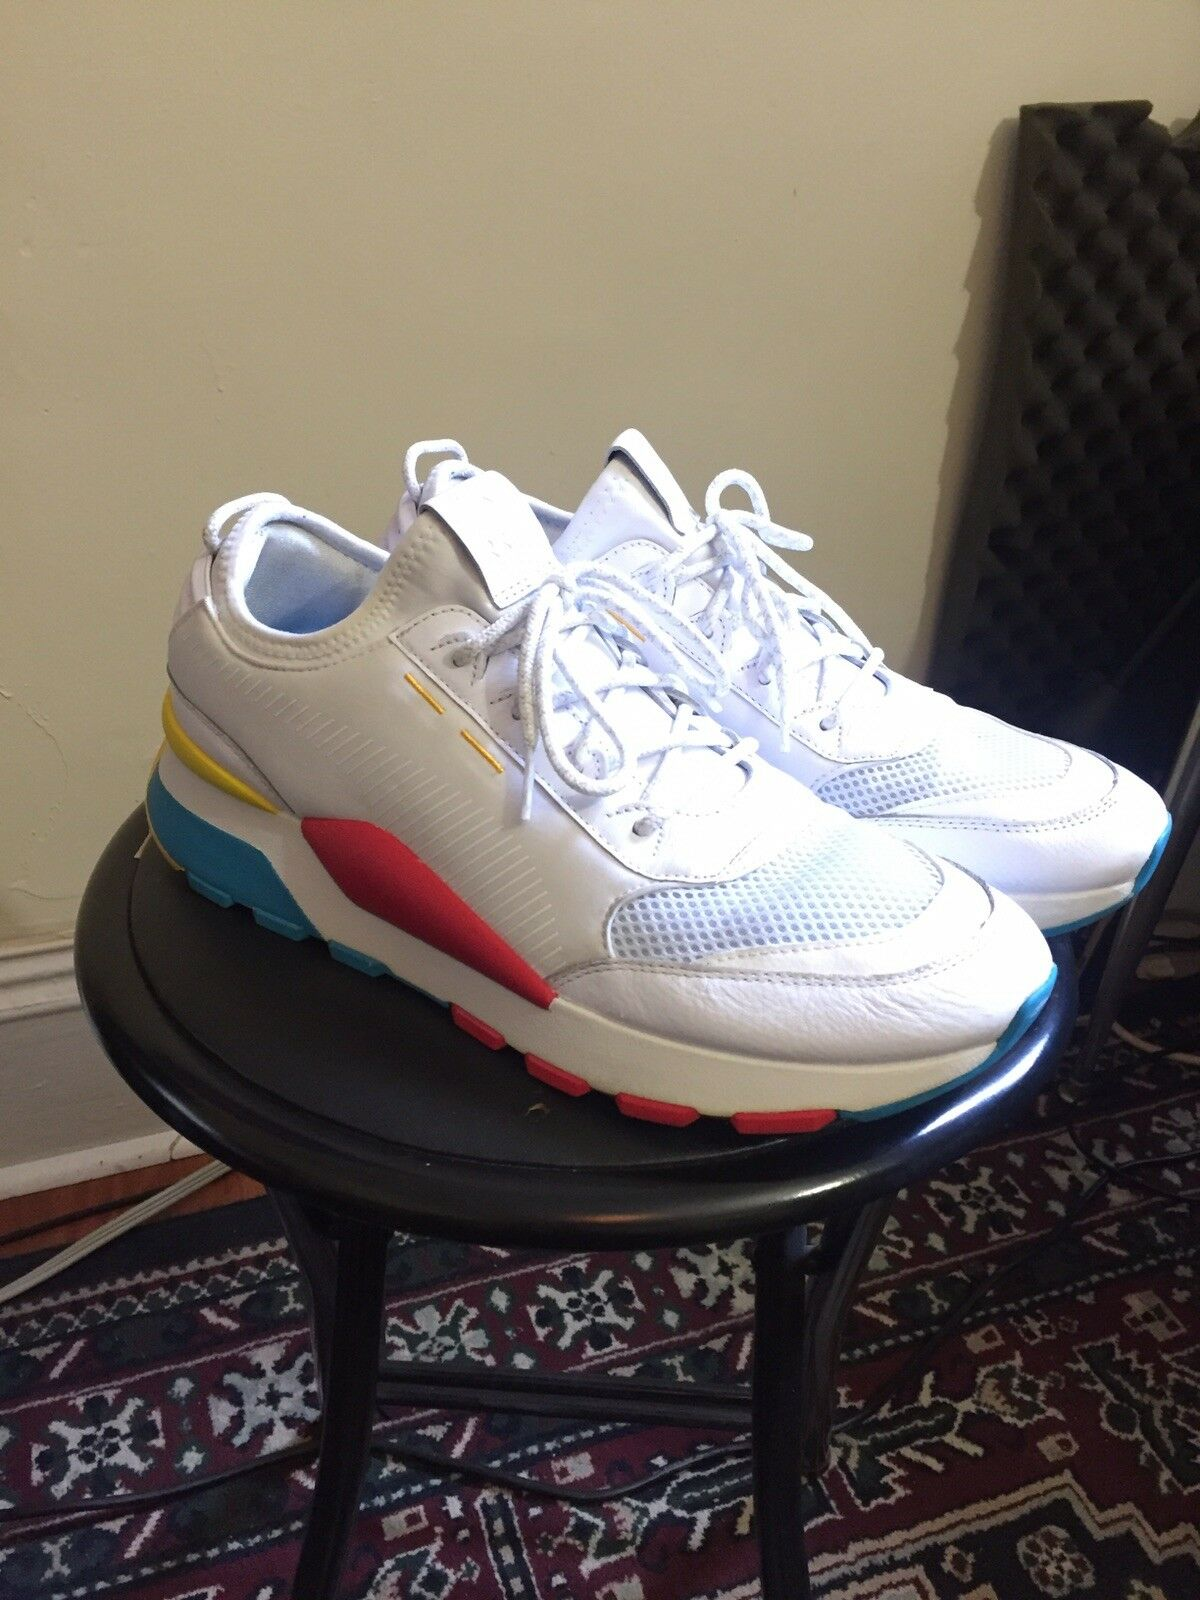 Puma RS 0 Play Sneakers White bluee Yellow Red Primary Sz 11 11.5 12 90s Sold out